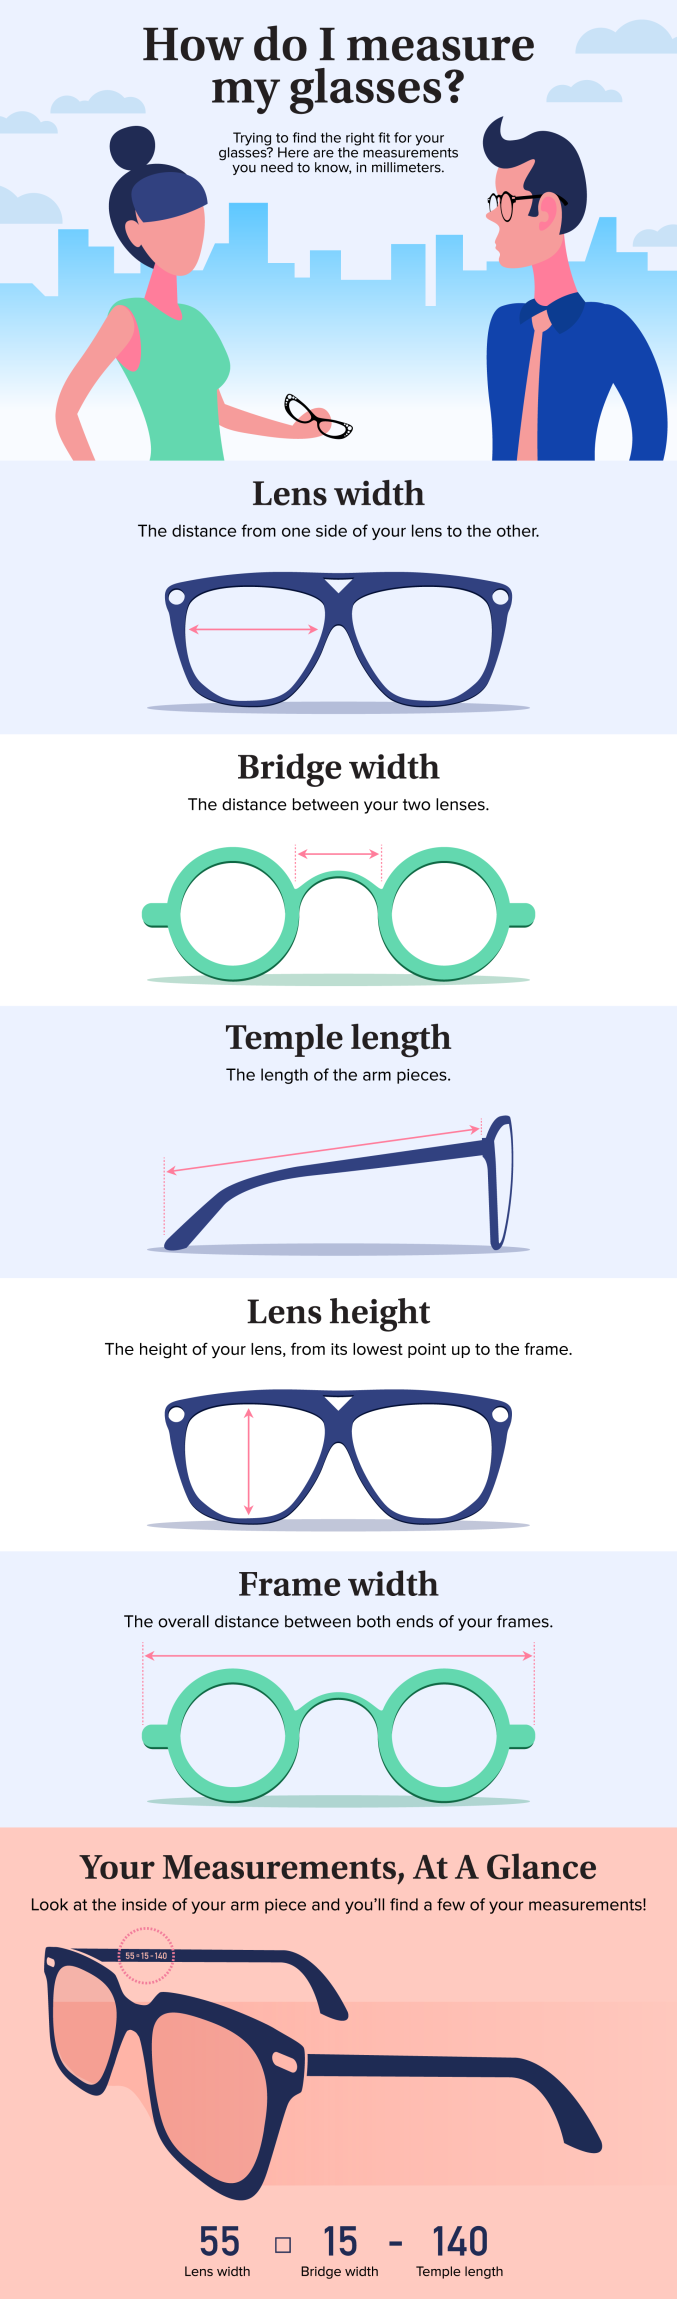 Infographic: How do i measure my glasses?